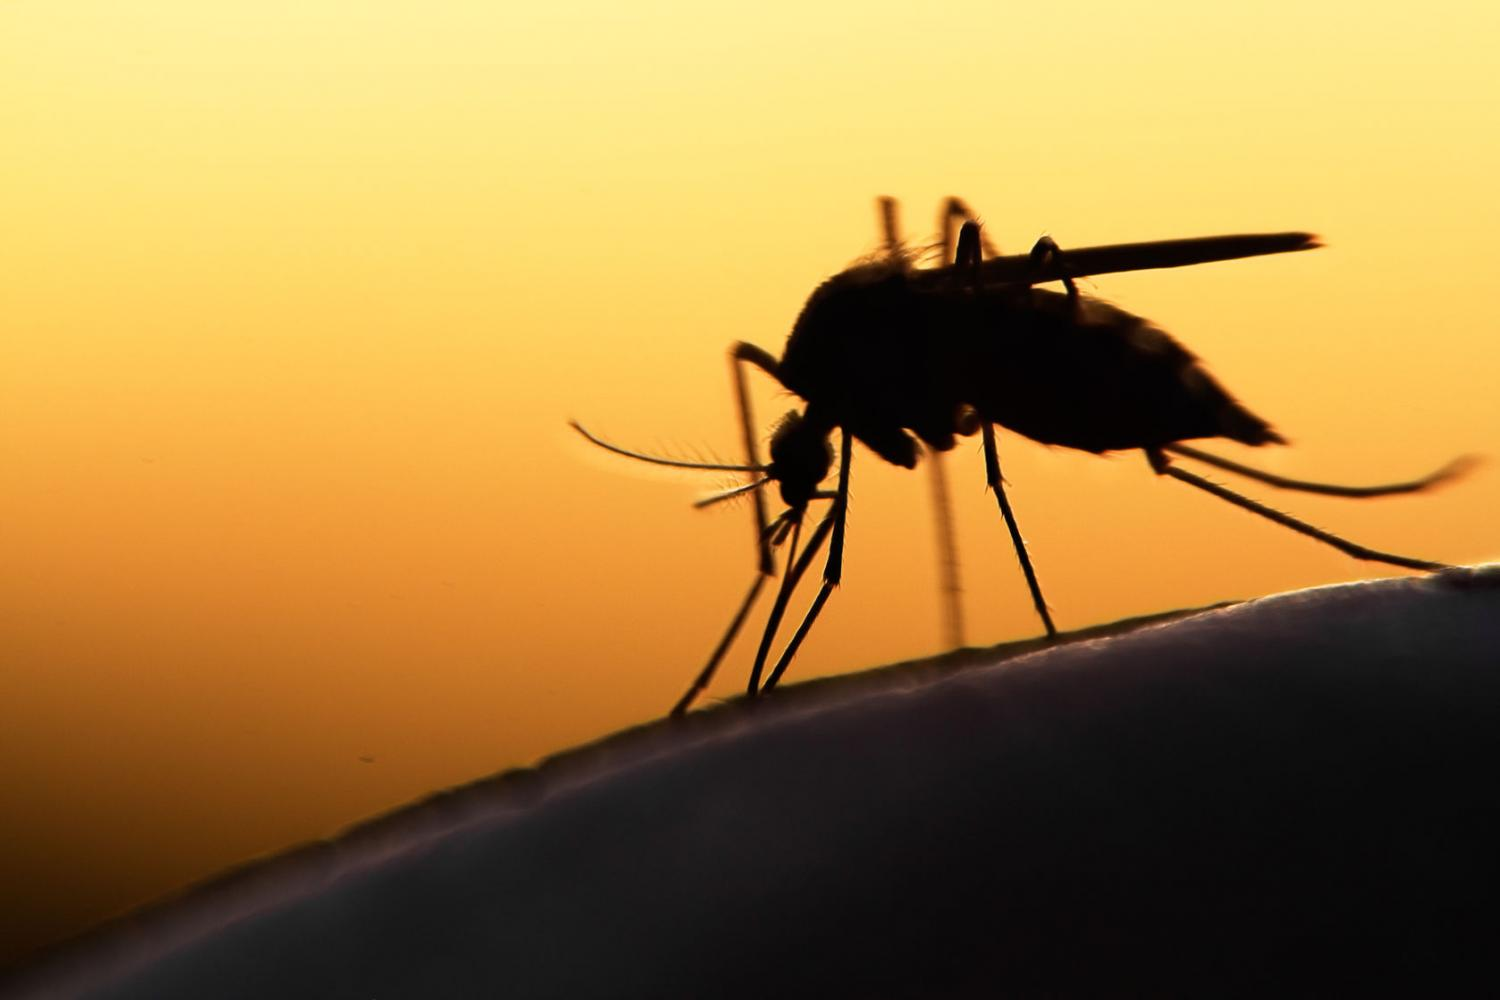 The world's first malaria vaccine is coming to Ghana, Kenya, and Malawi